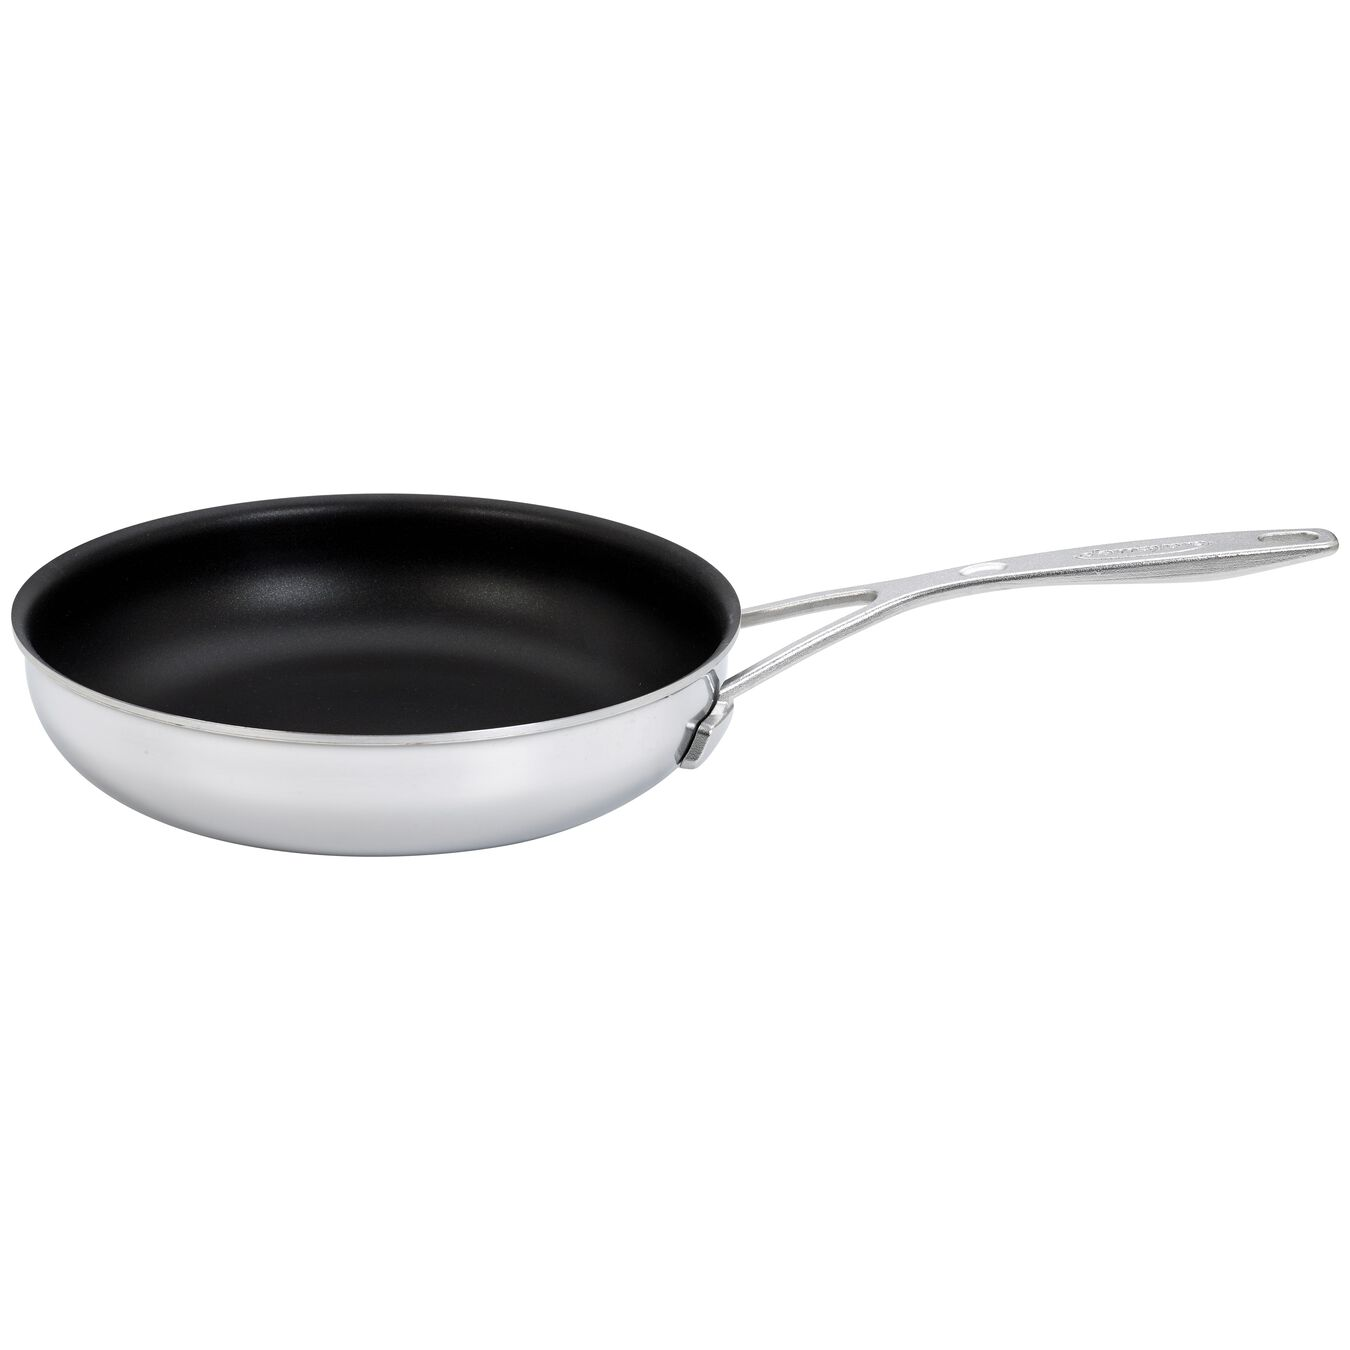 11-inch Stainless Steel Traditional Nonstick Fry Pan,,large 1